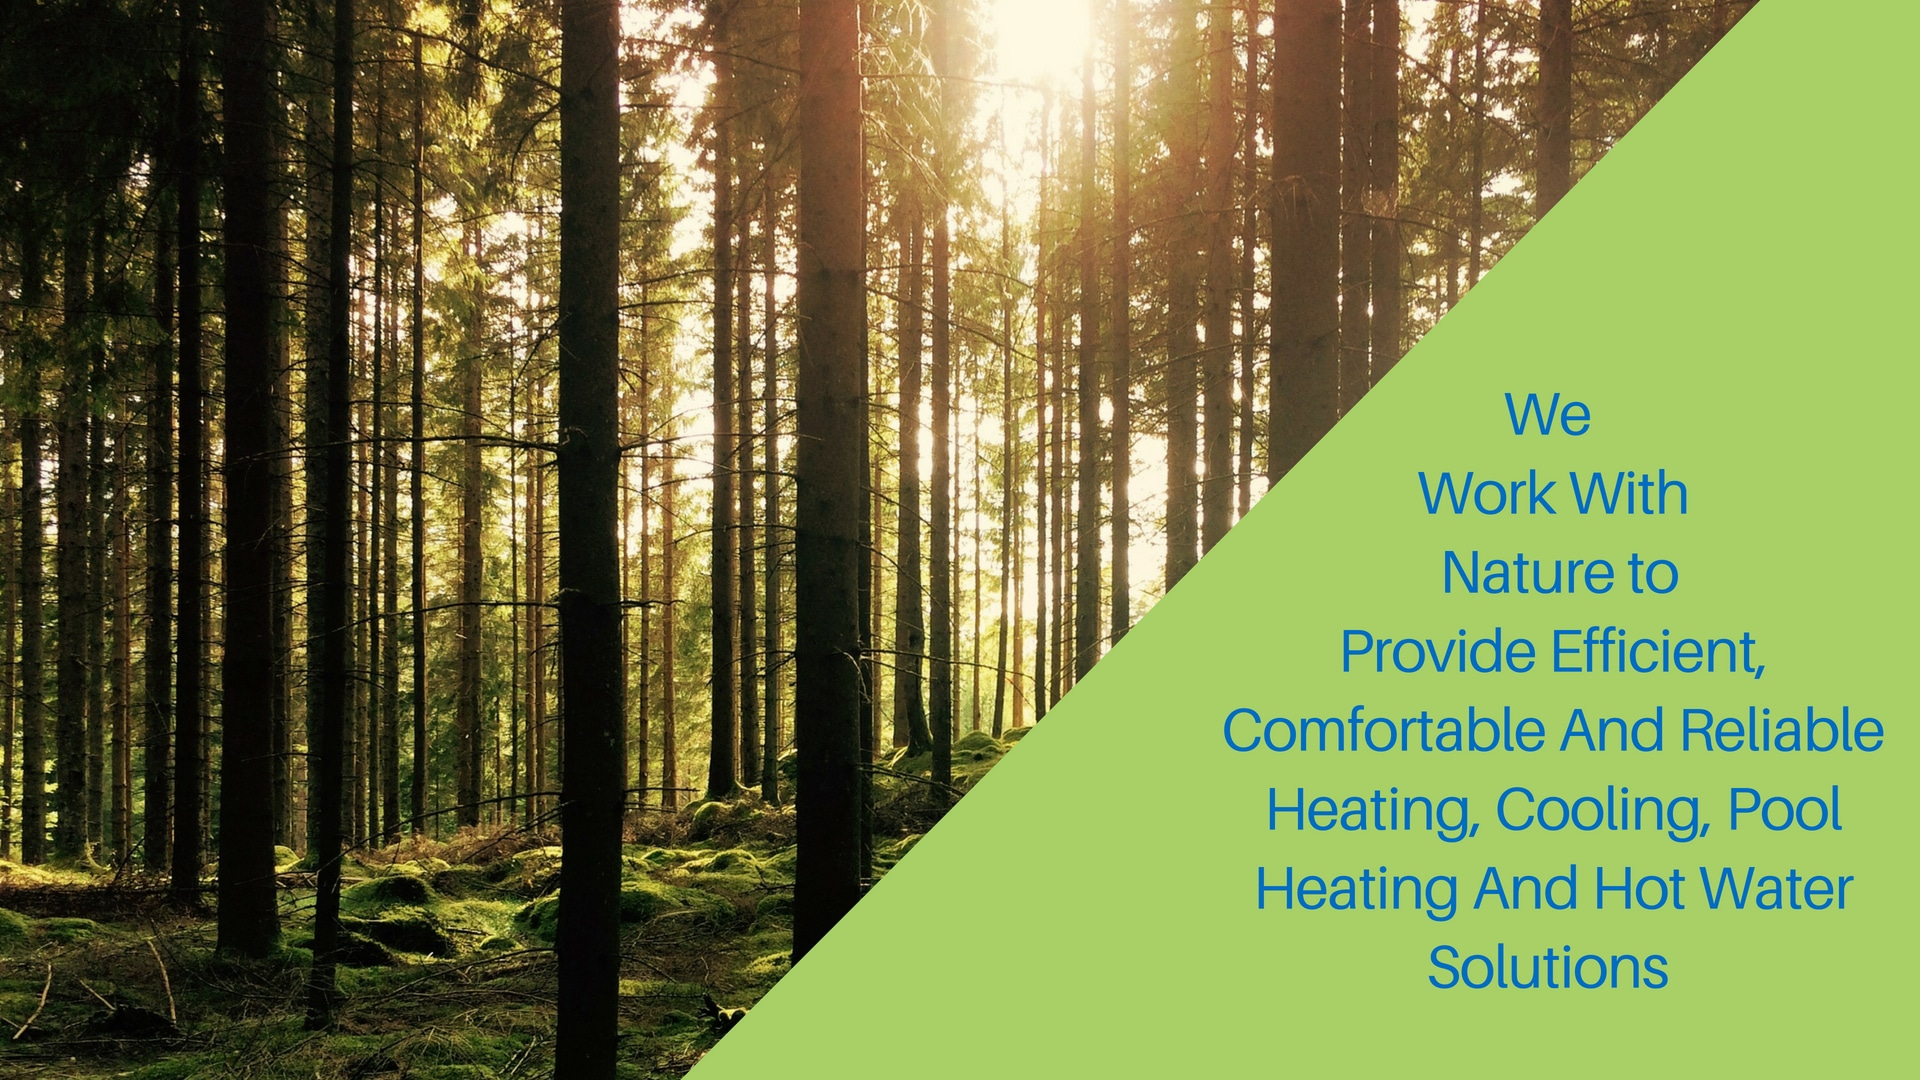 Adelaide Geoexchange provides solutions that nature would approve of.